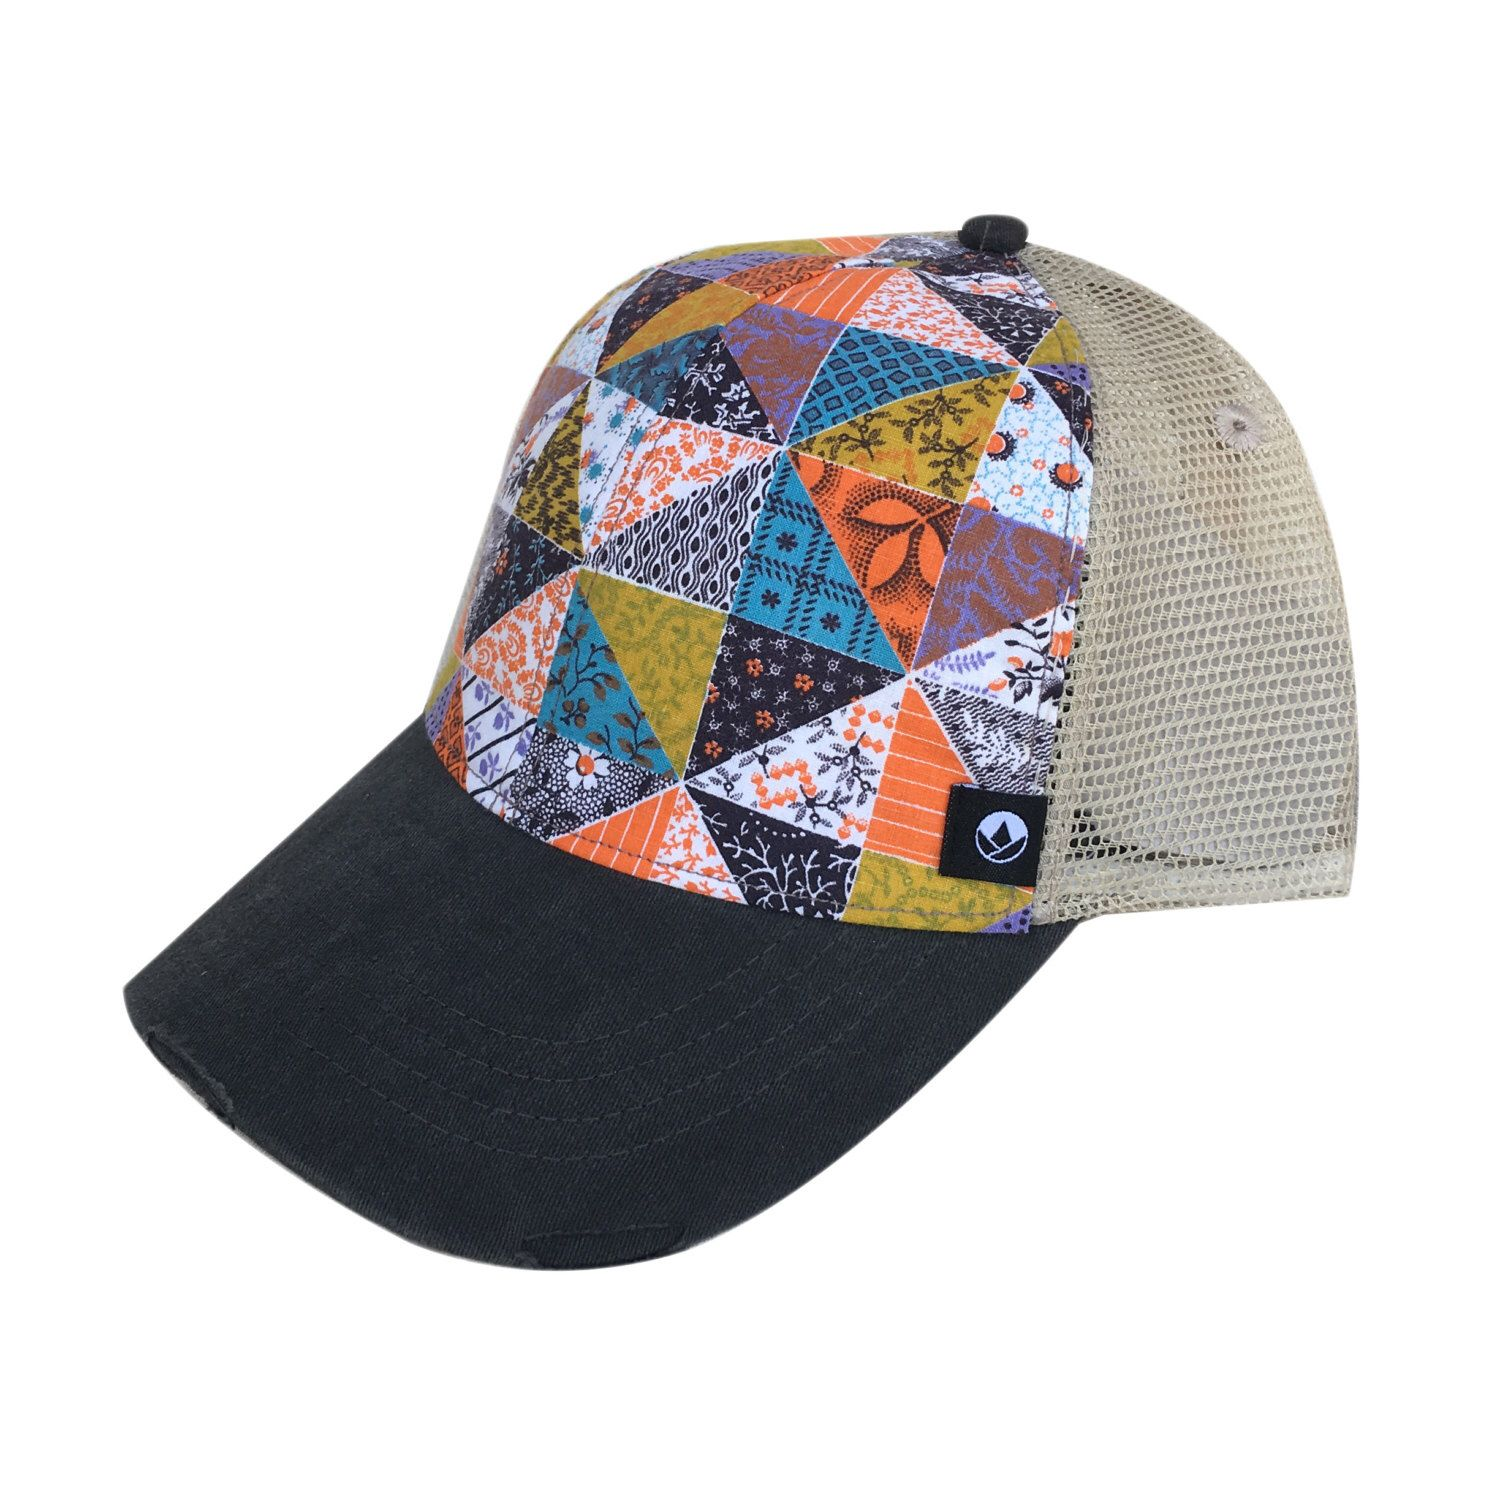 d6d55ef7602 Pin by Mountain Native on Ball caps and truckers for women ...